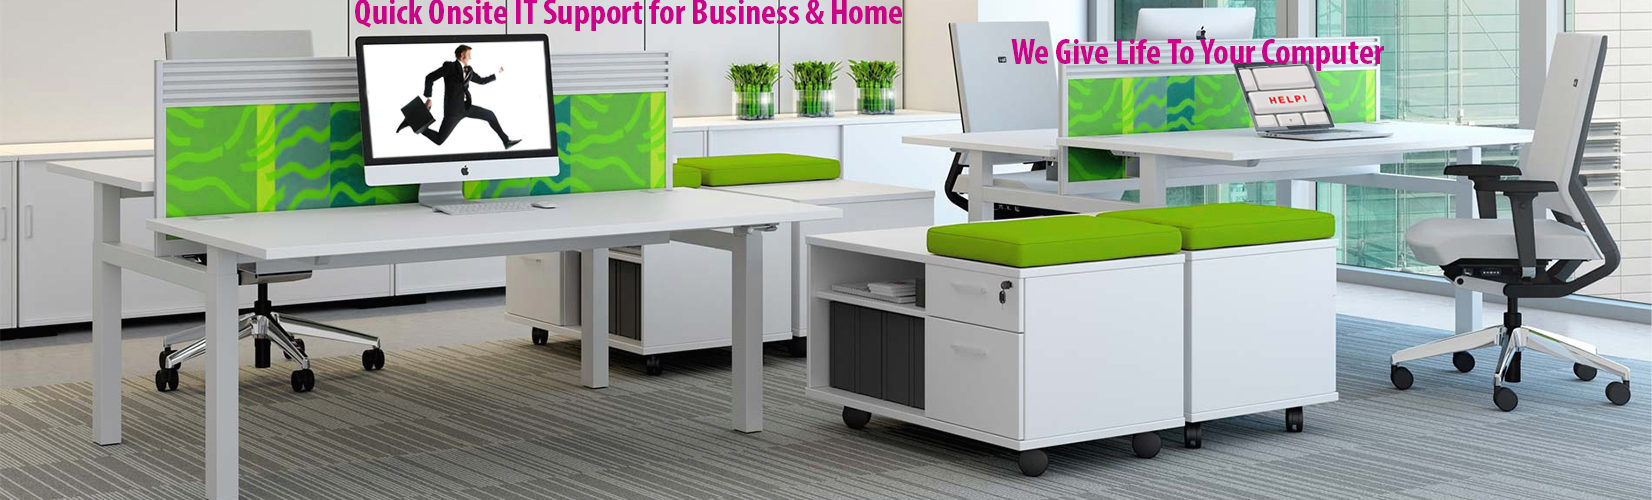 Quick-Onsite-IT-Support-for-Business-Home-Quick-Fix-Dubai